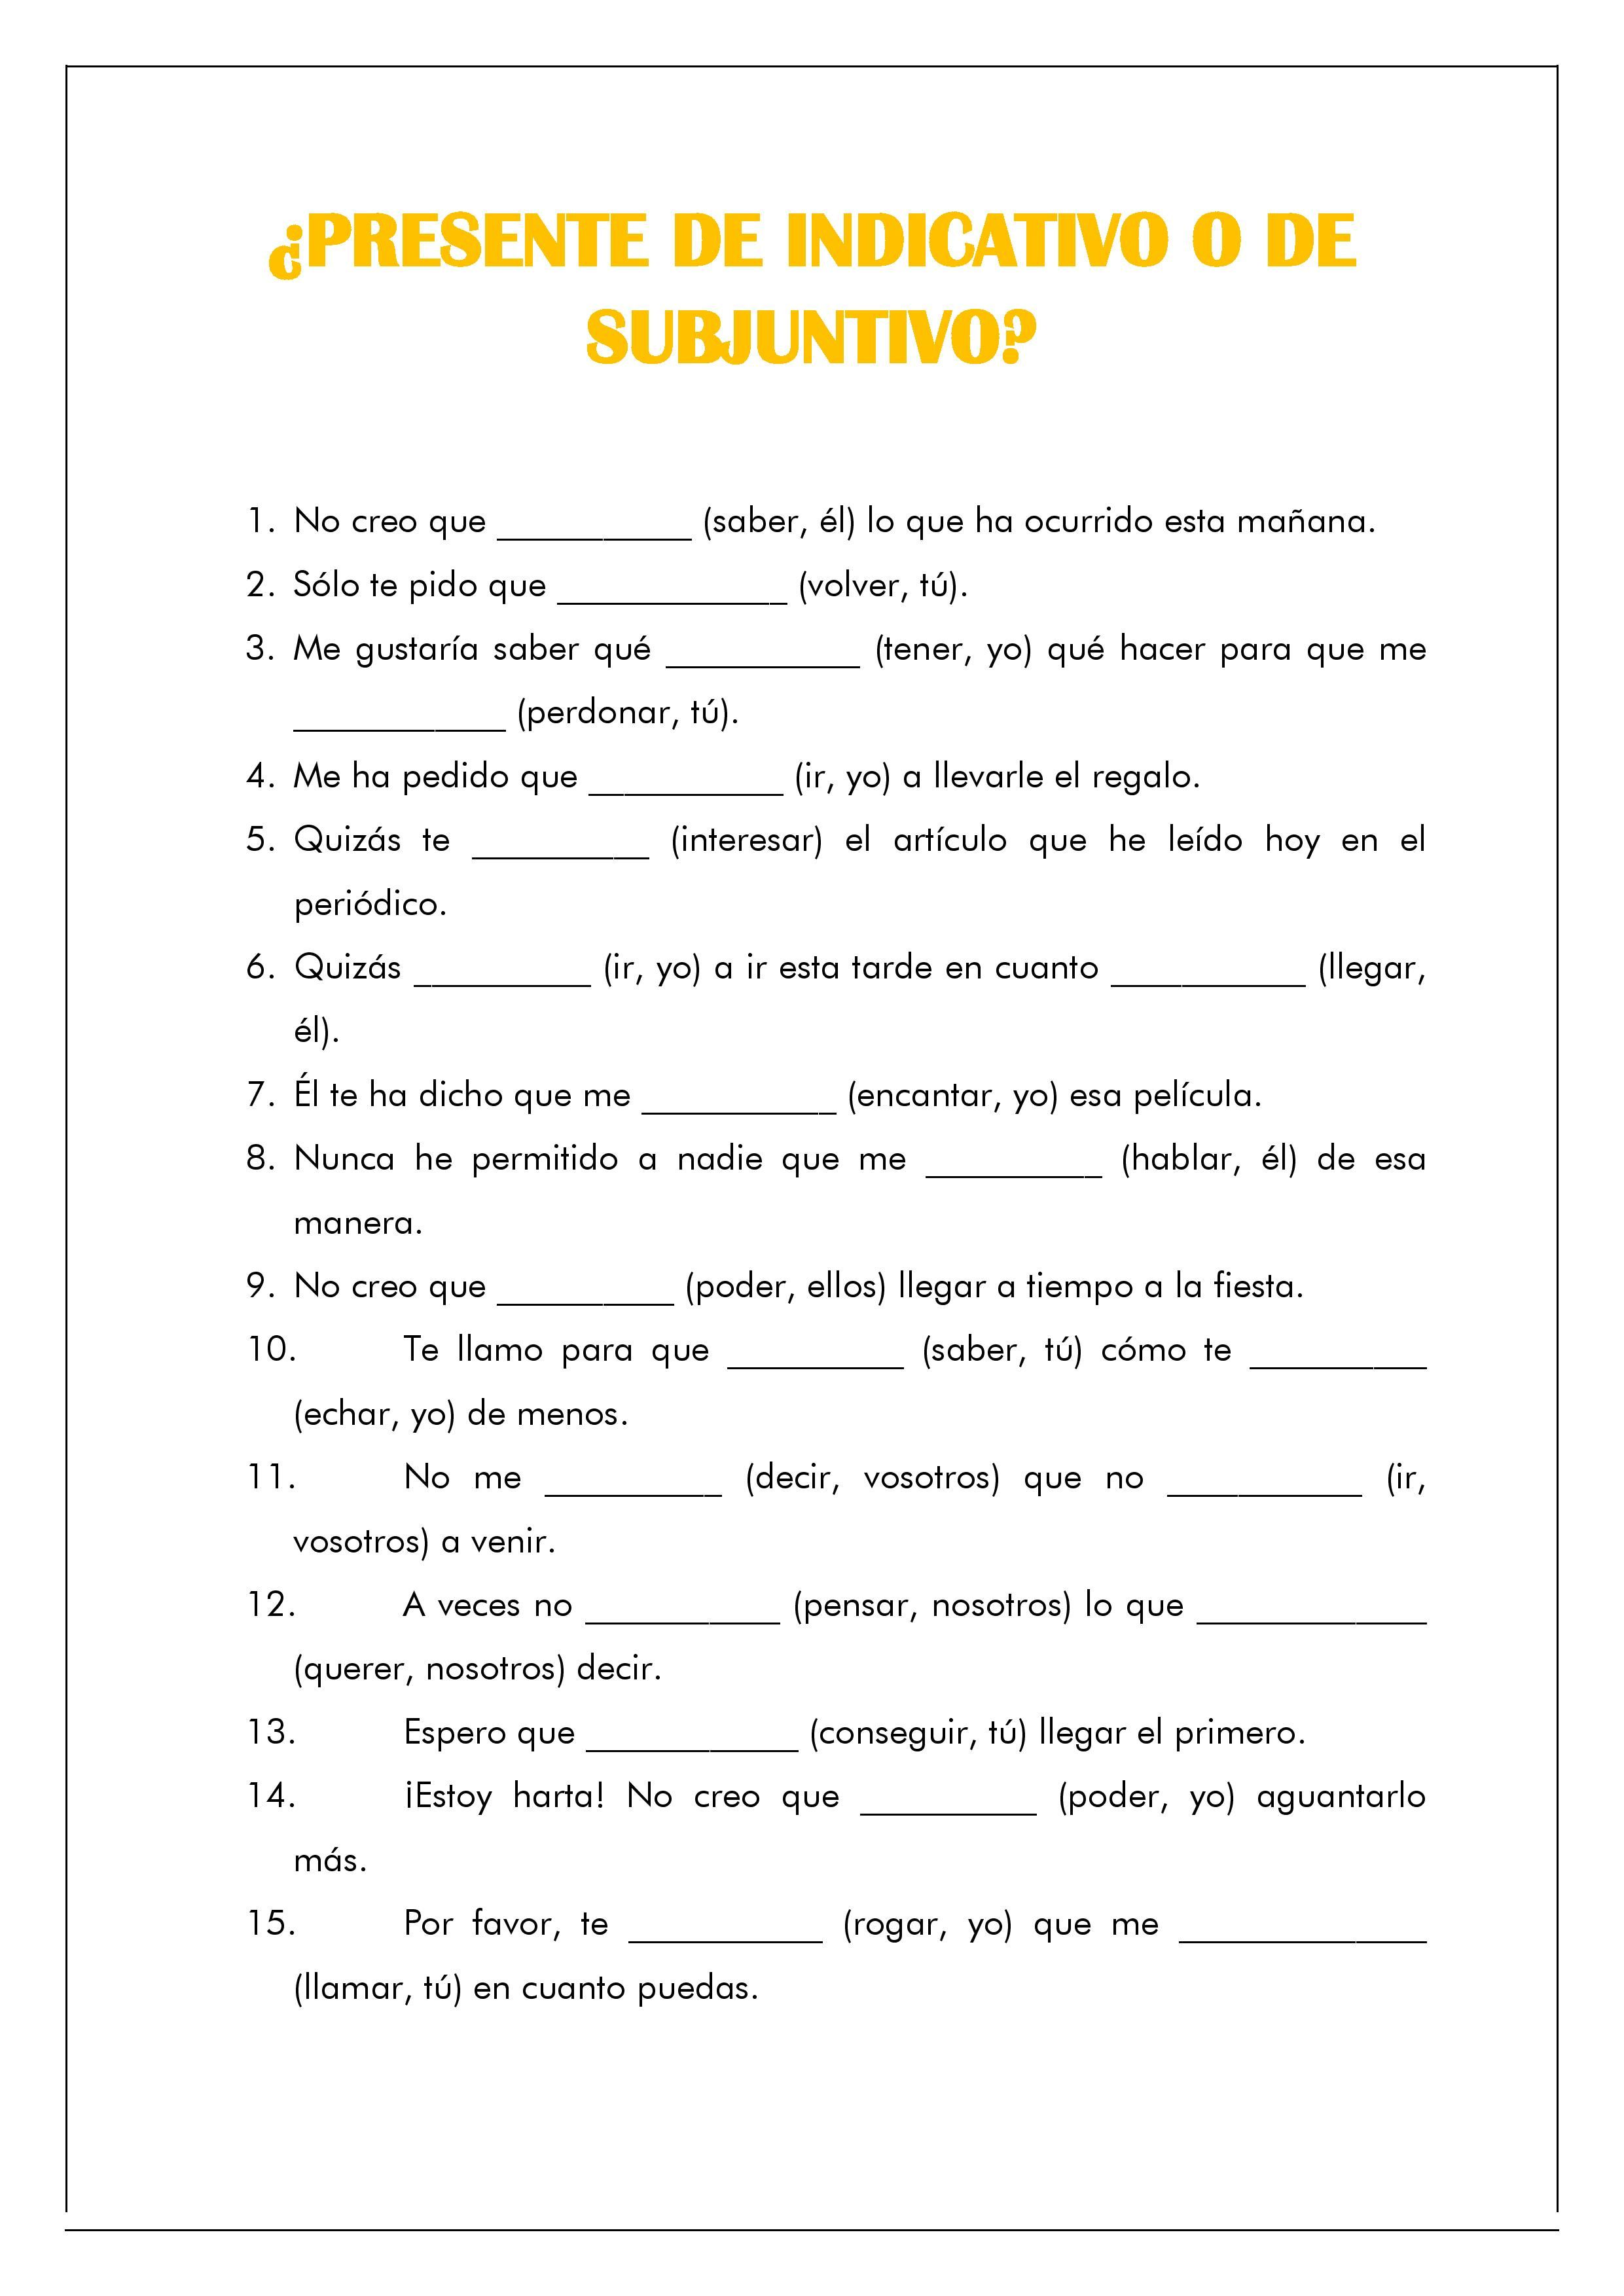 worksheet Present Subjunctive Worksheet present indicative or subjunctive lecto escritura la del learn and teach spanish one lesson a day